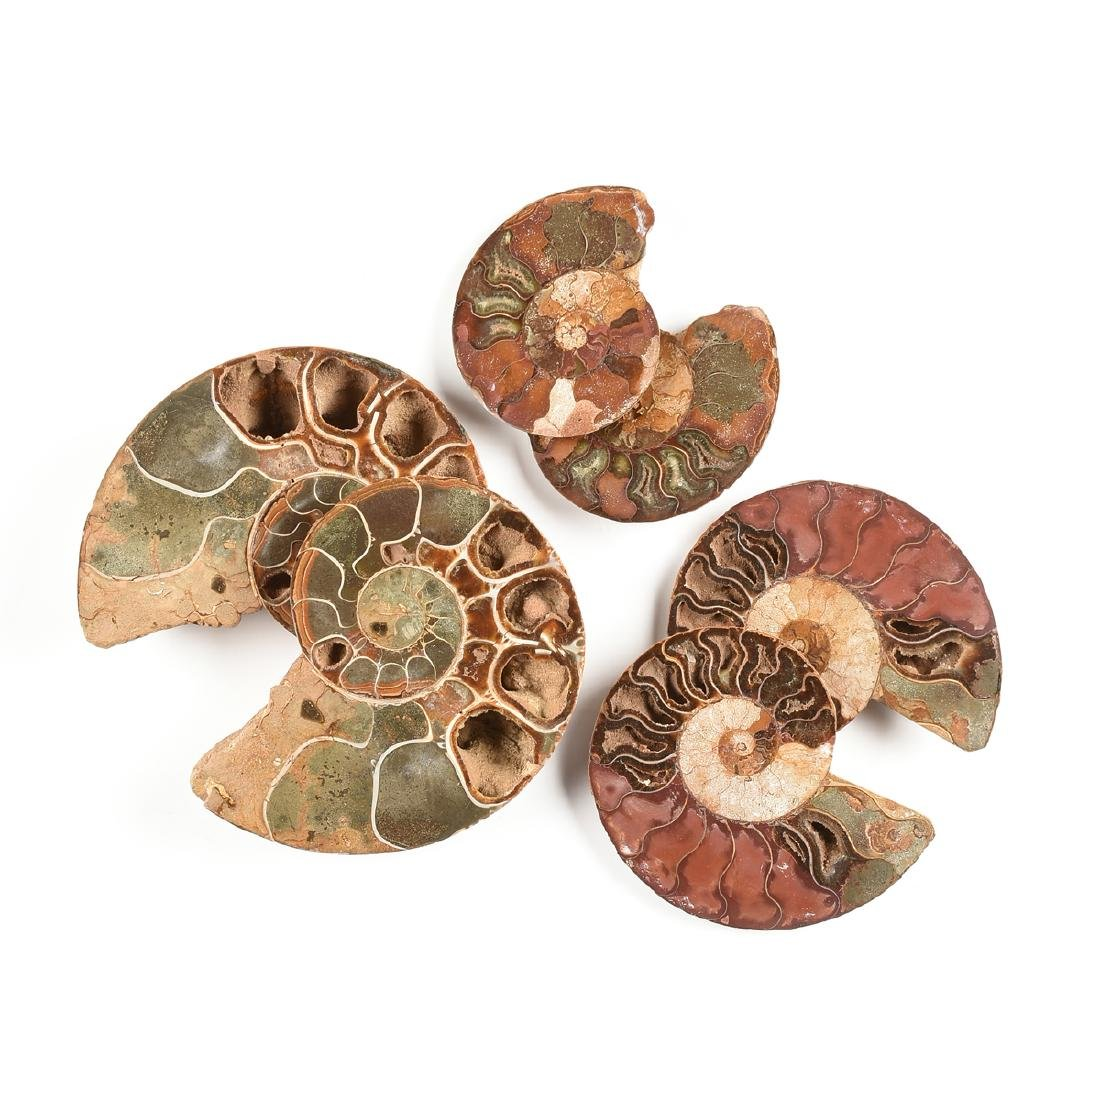 A GROUP OF THREE GRADUATED BISECTED POLISHED AMMONITE